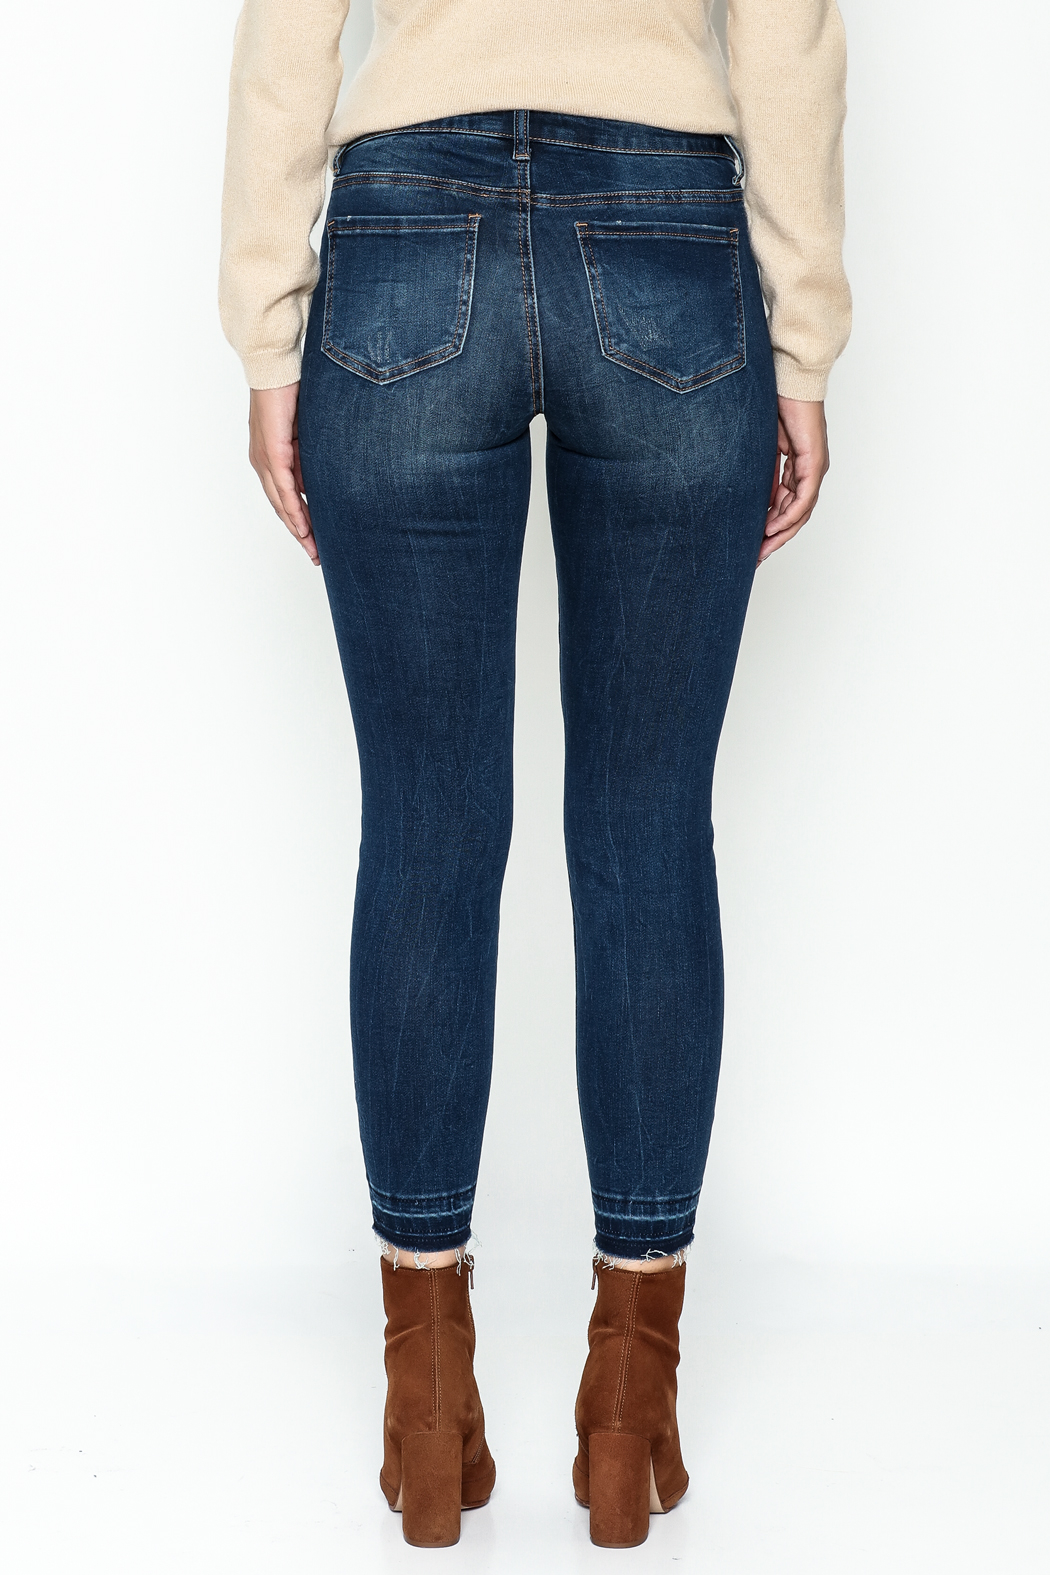 DEX Jeans Madison Distressed Cropped Jeans - Back Cropped Image